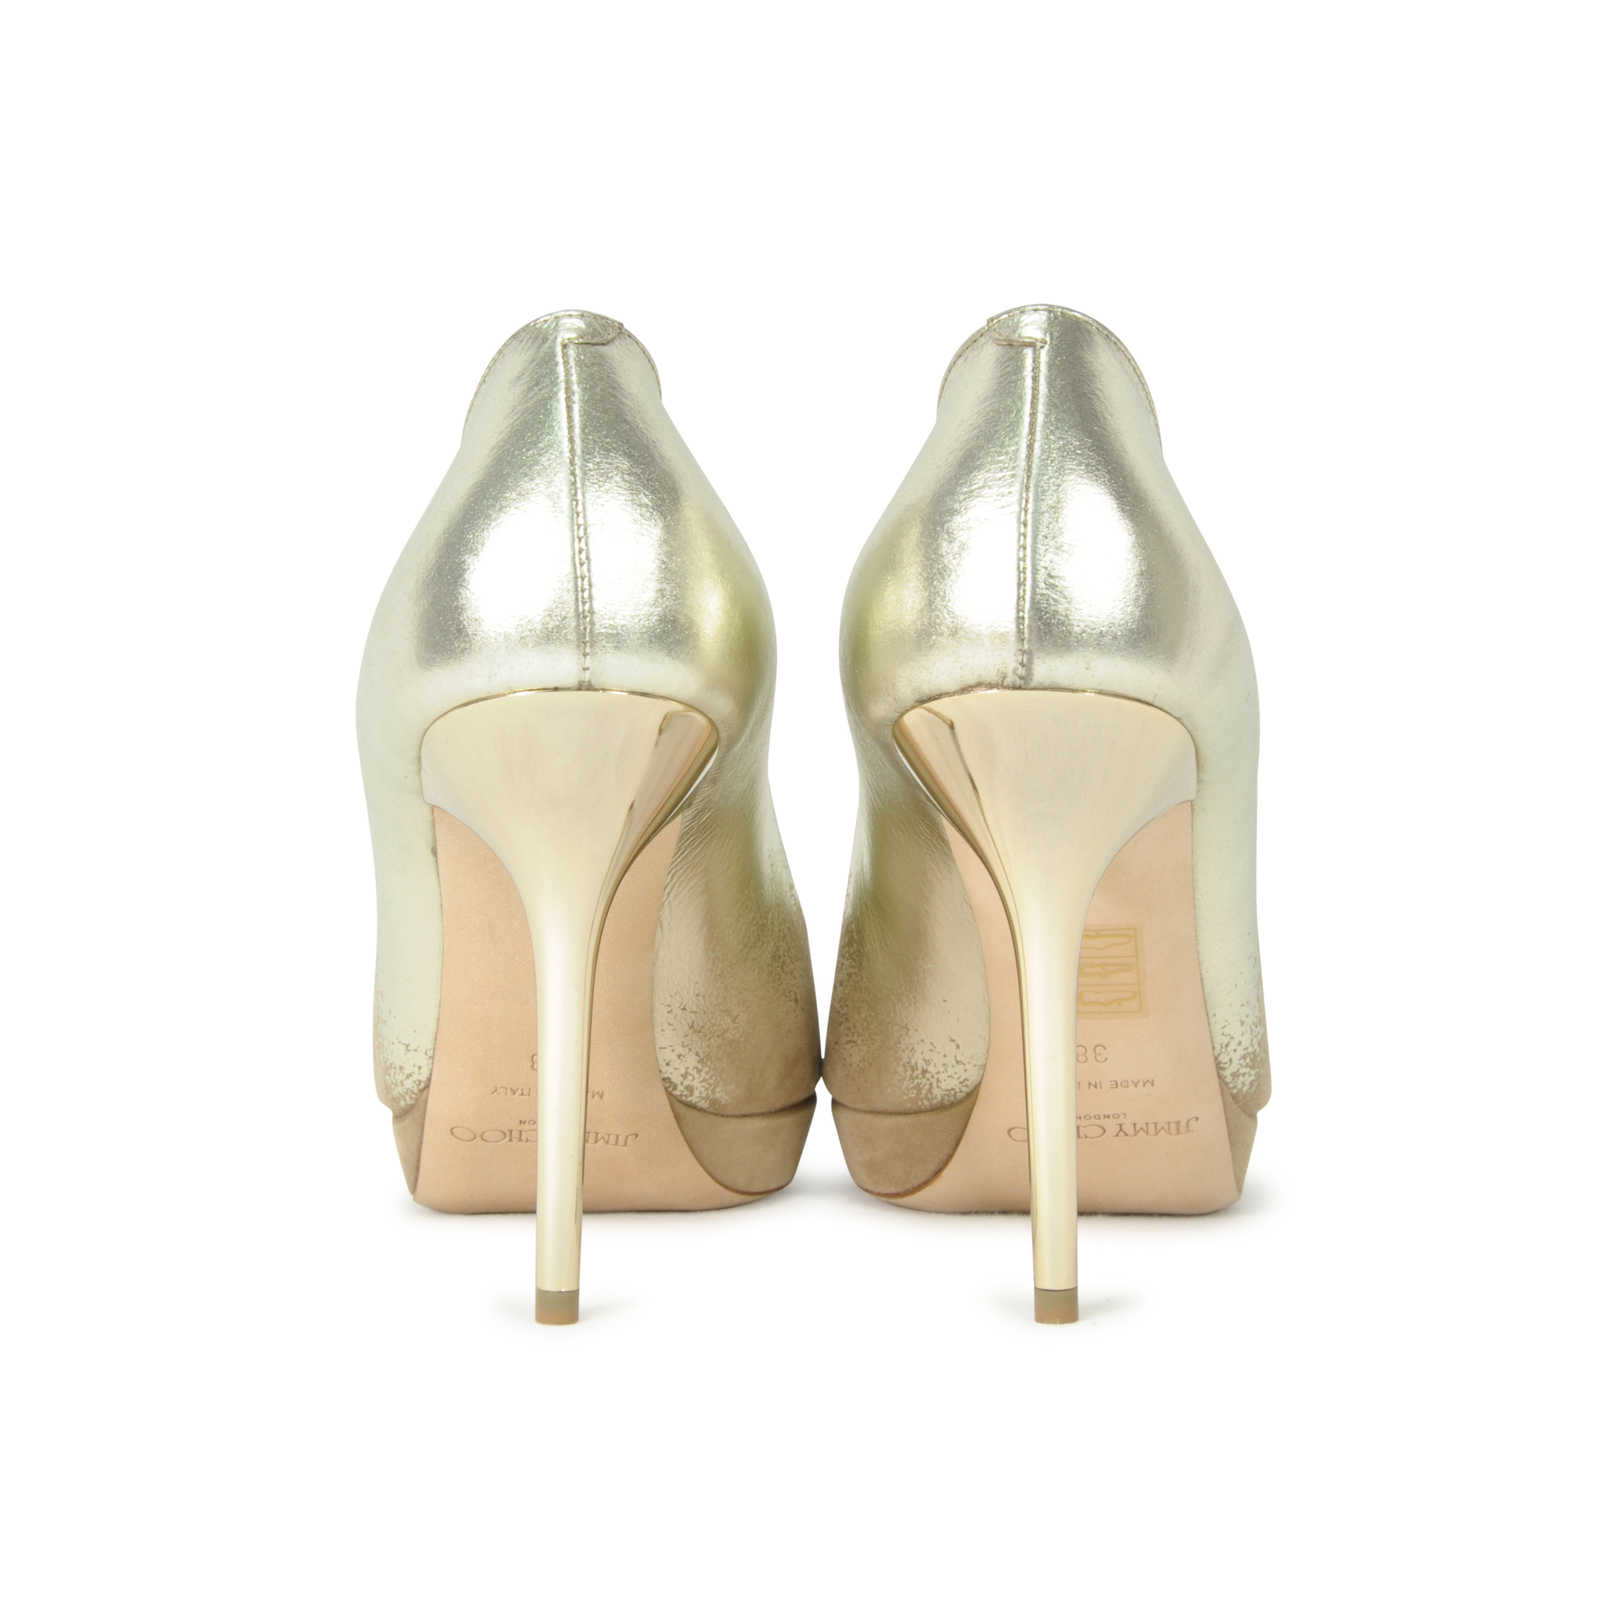 65c45a2c14b0 ... Authentic Second Hand Jimmy Choo Suede Mirror Luna Pumps (PSS-287-00003)  ...